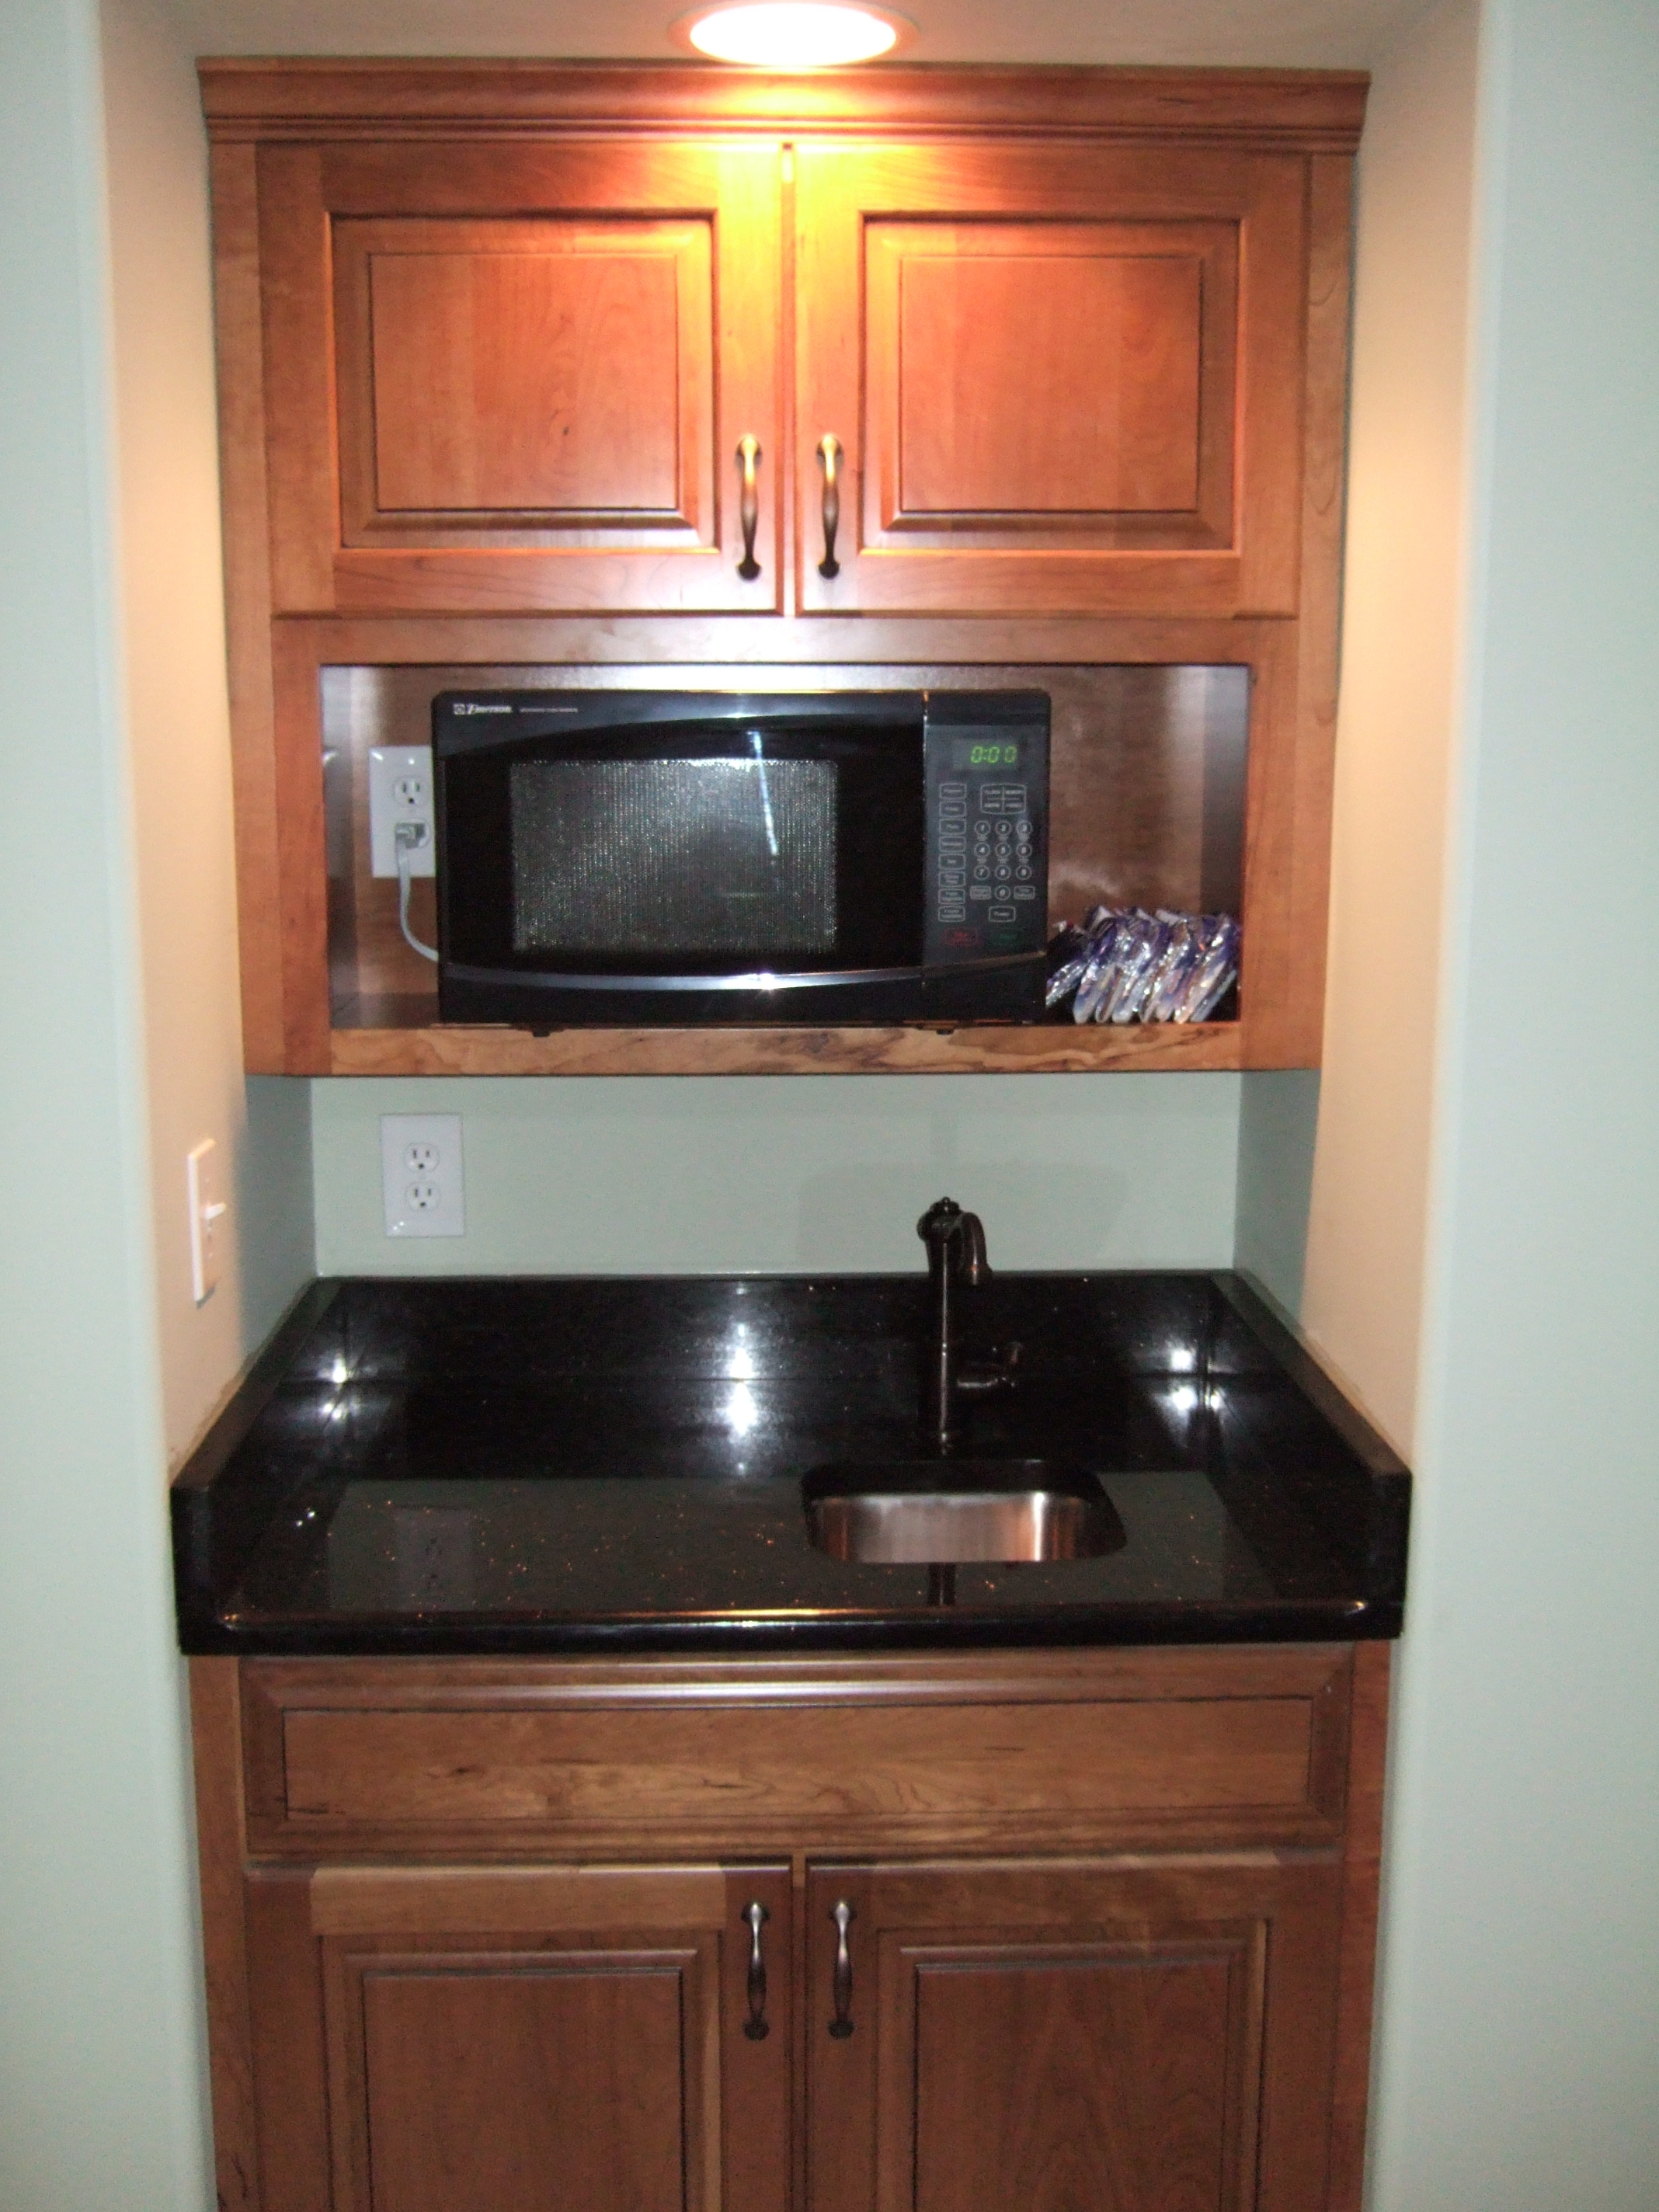 Granite counter undermount bar sink. Under counter frig and wine frig.